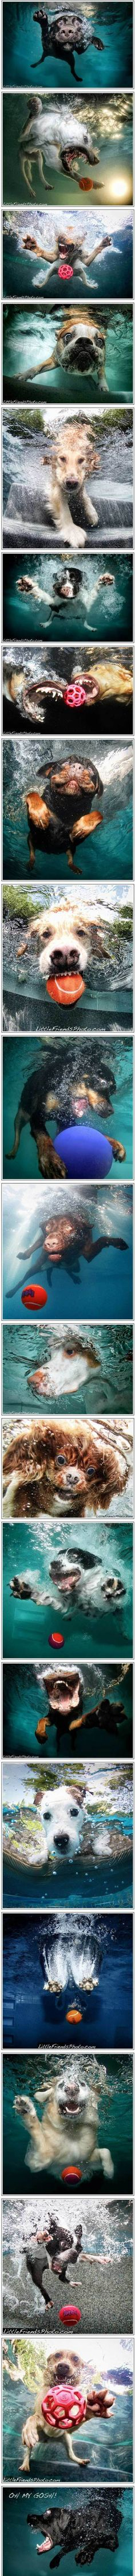 Dogs in the water.